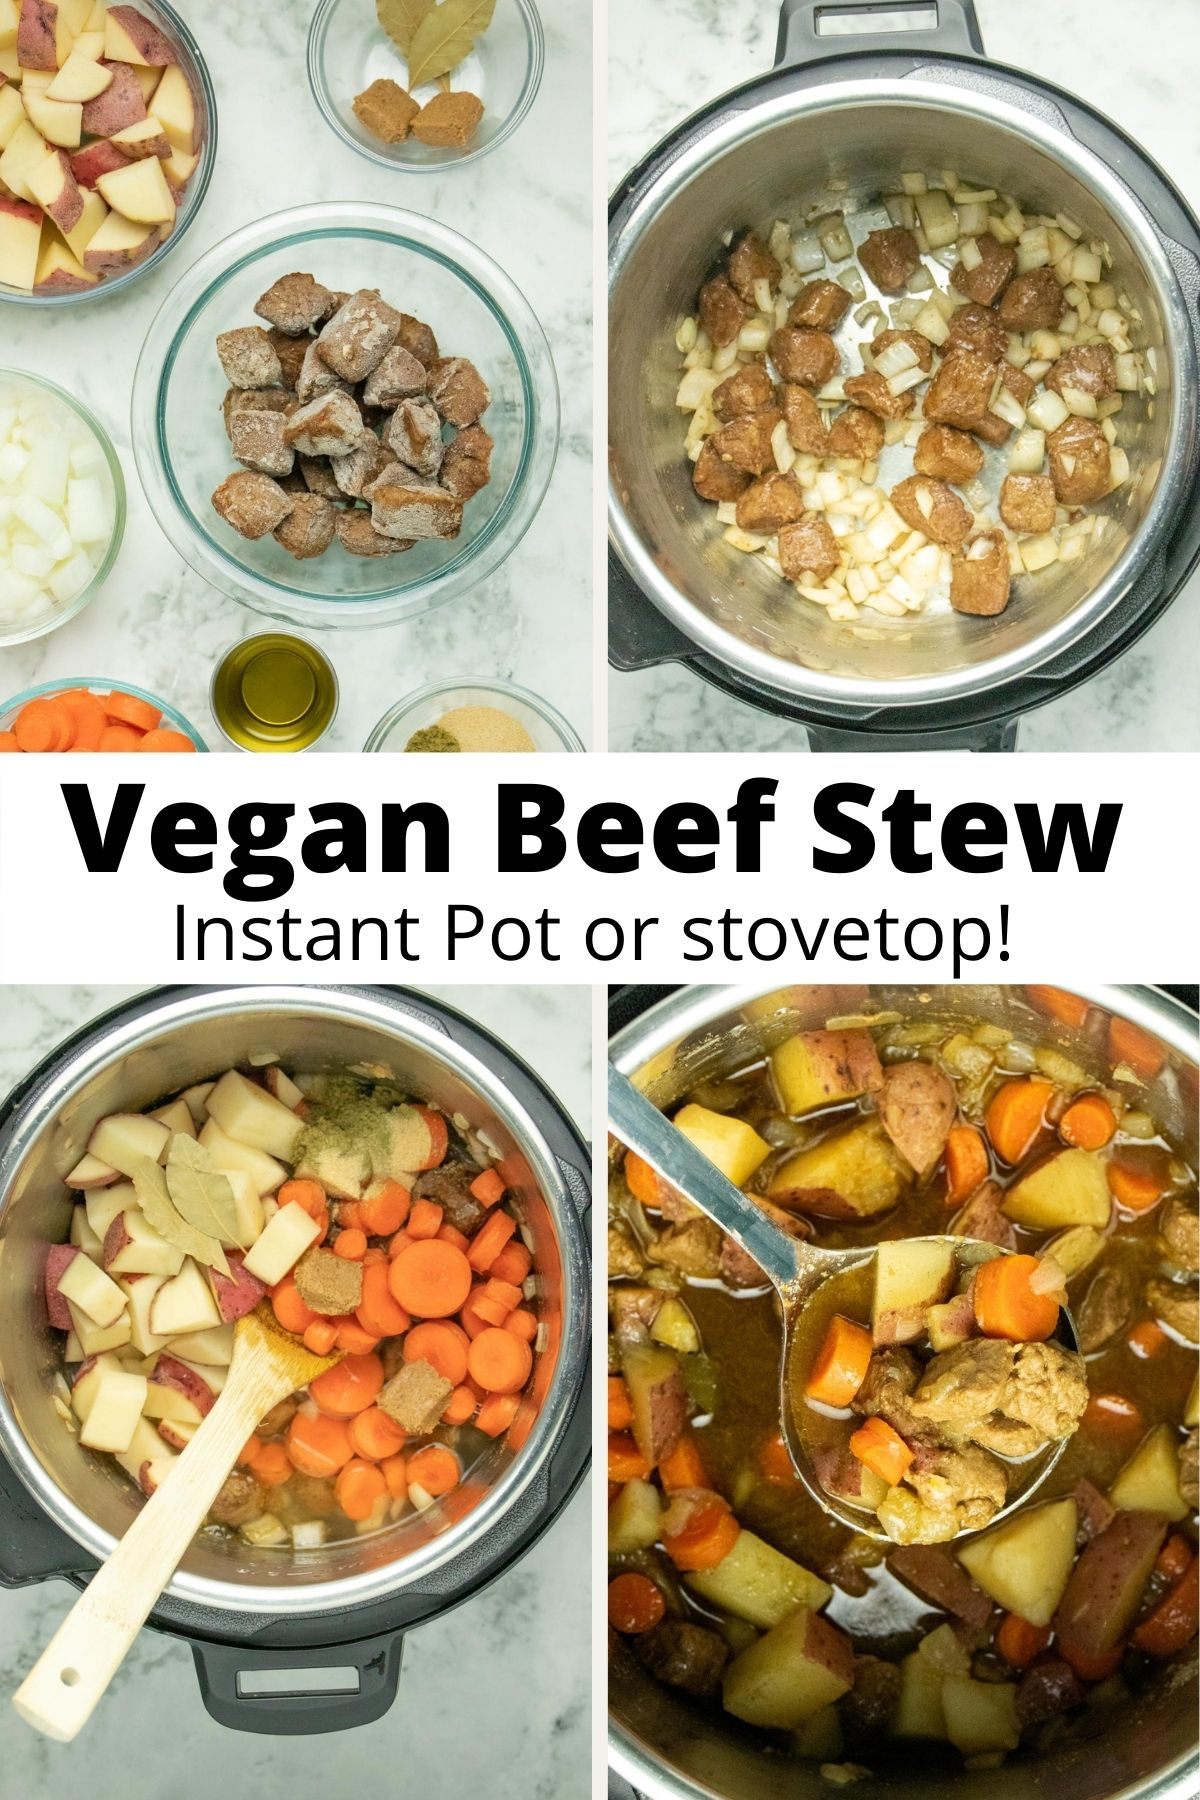 image collage of ingredients and cooking the stew in an Instant Pot, text overlay